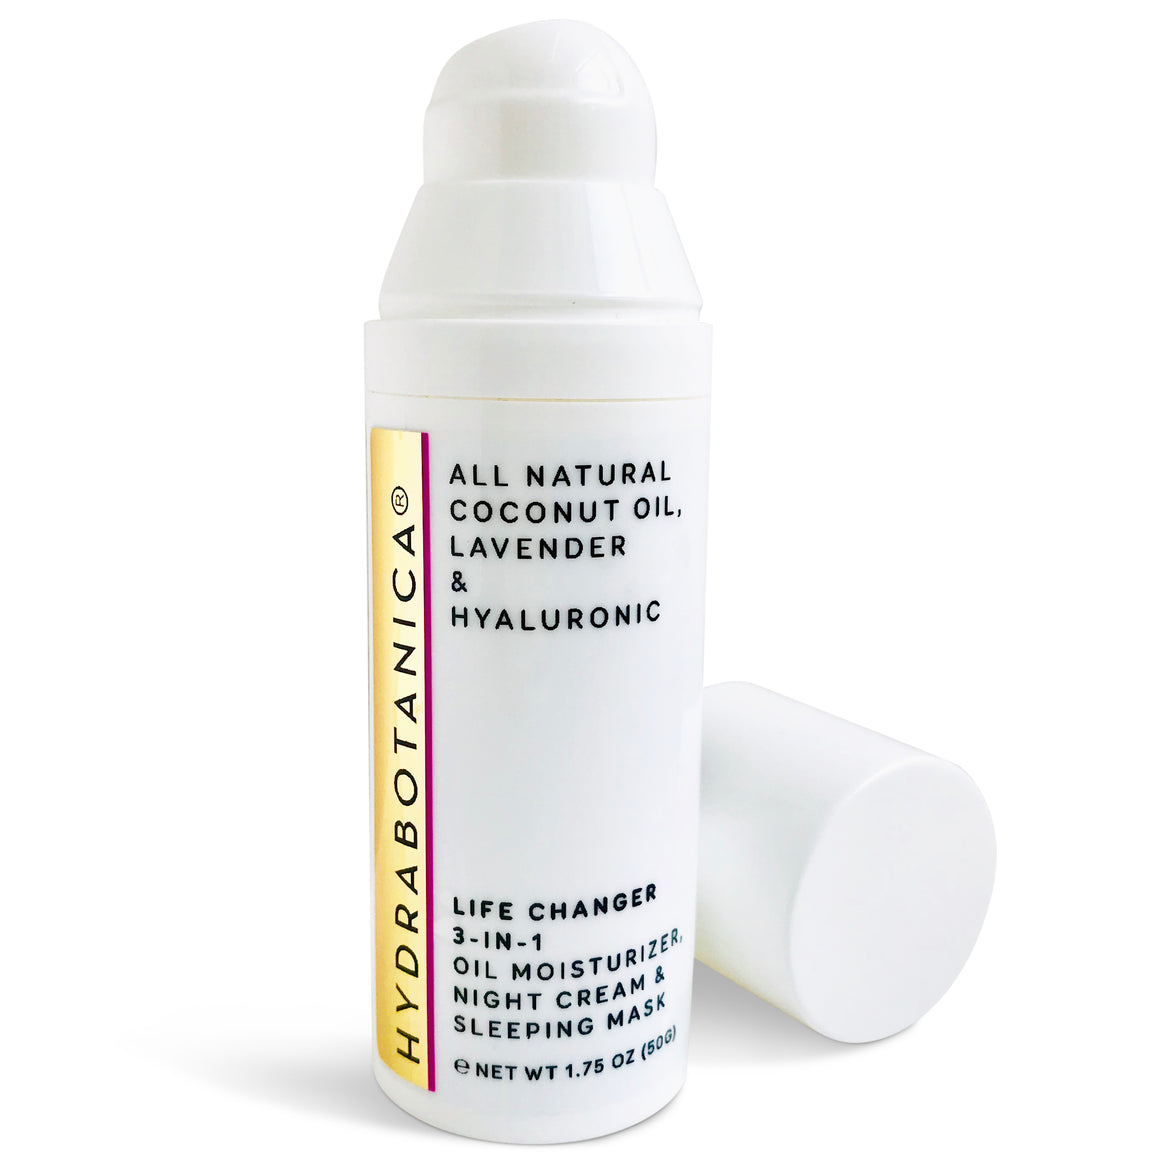 LIFE CHANGER 3-IN-1 - OIL MOISTURIZER, NIGHT CREAM, AND SLEEPING MASK